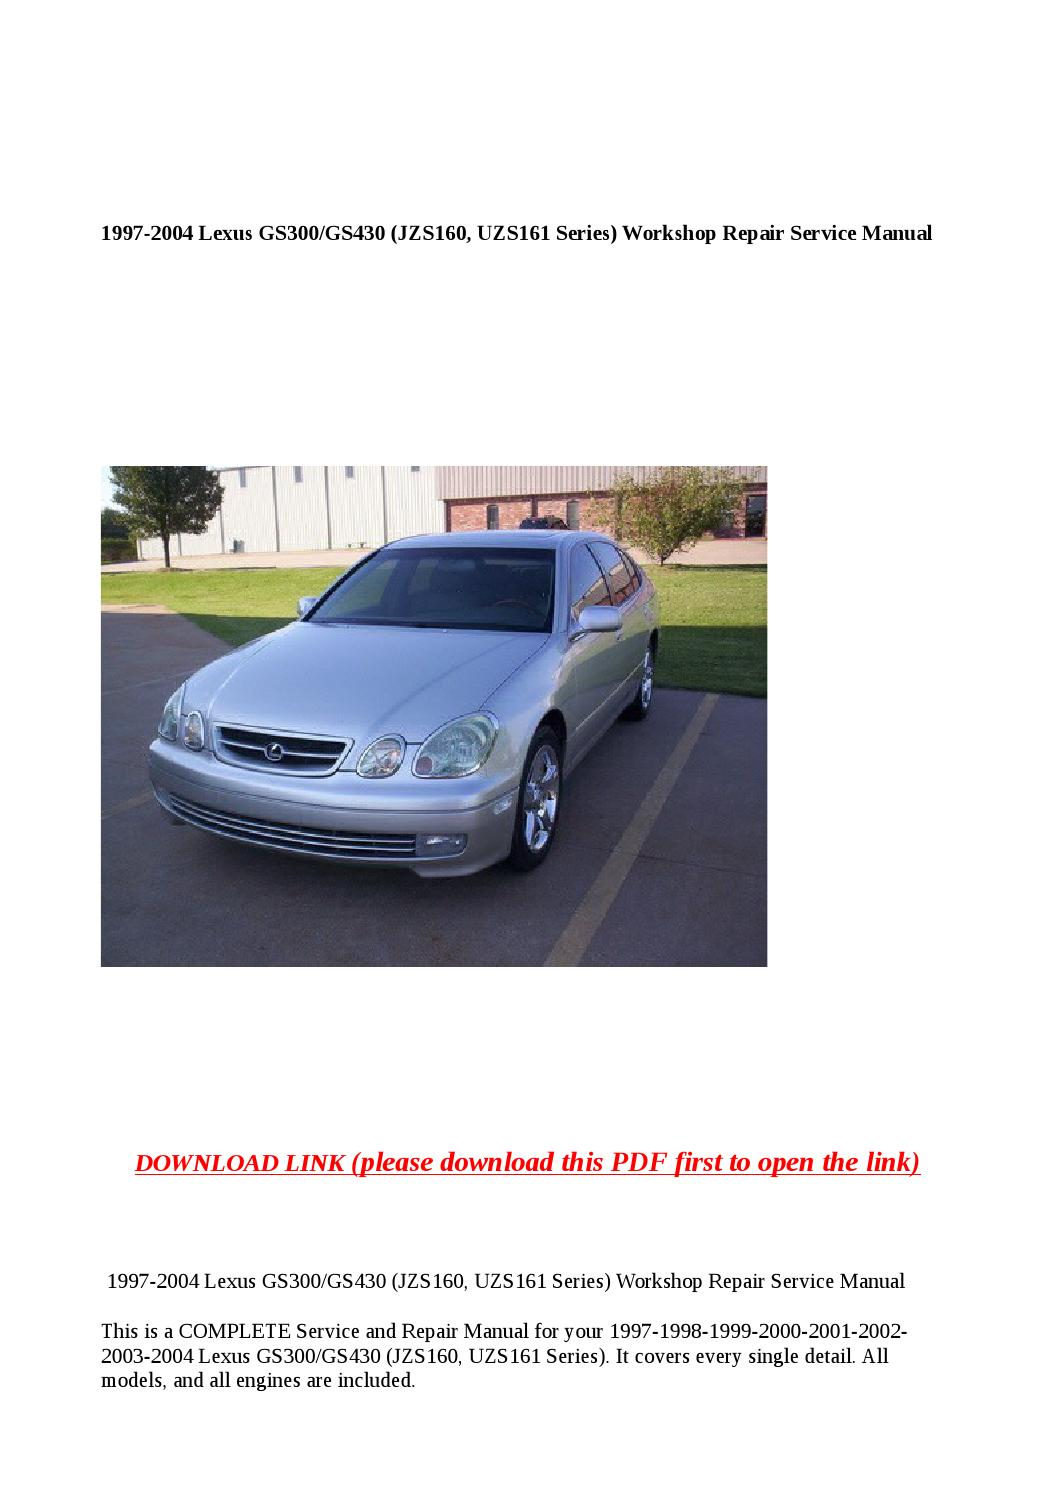 1997 2004 lexus gs300 gs430 (jzs160, uzs161 series) workshop repair service  manual by Anna Tang - issuu